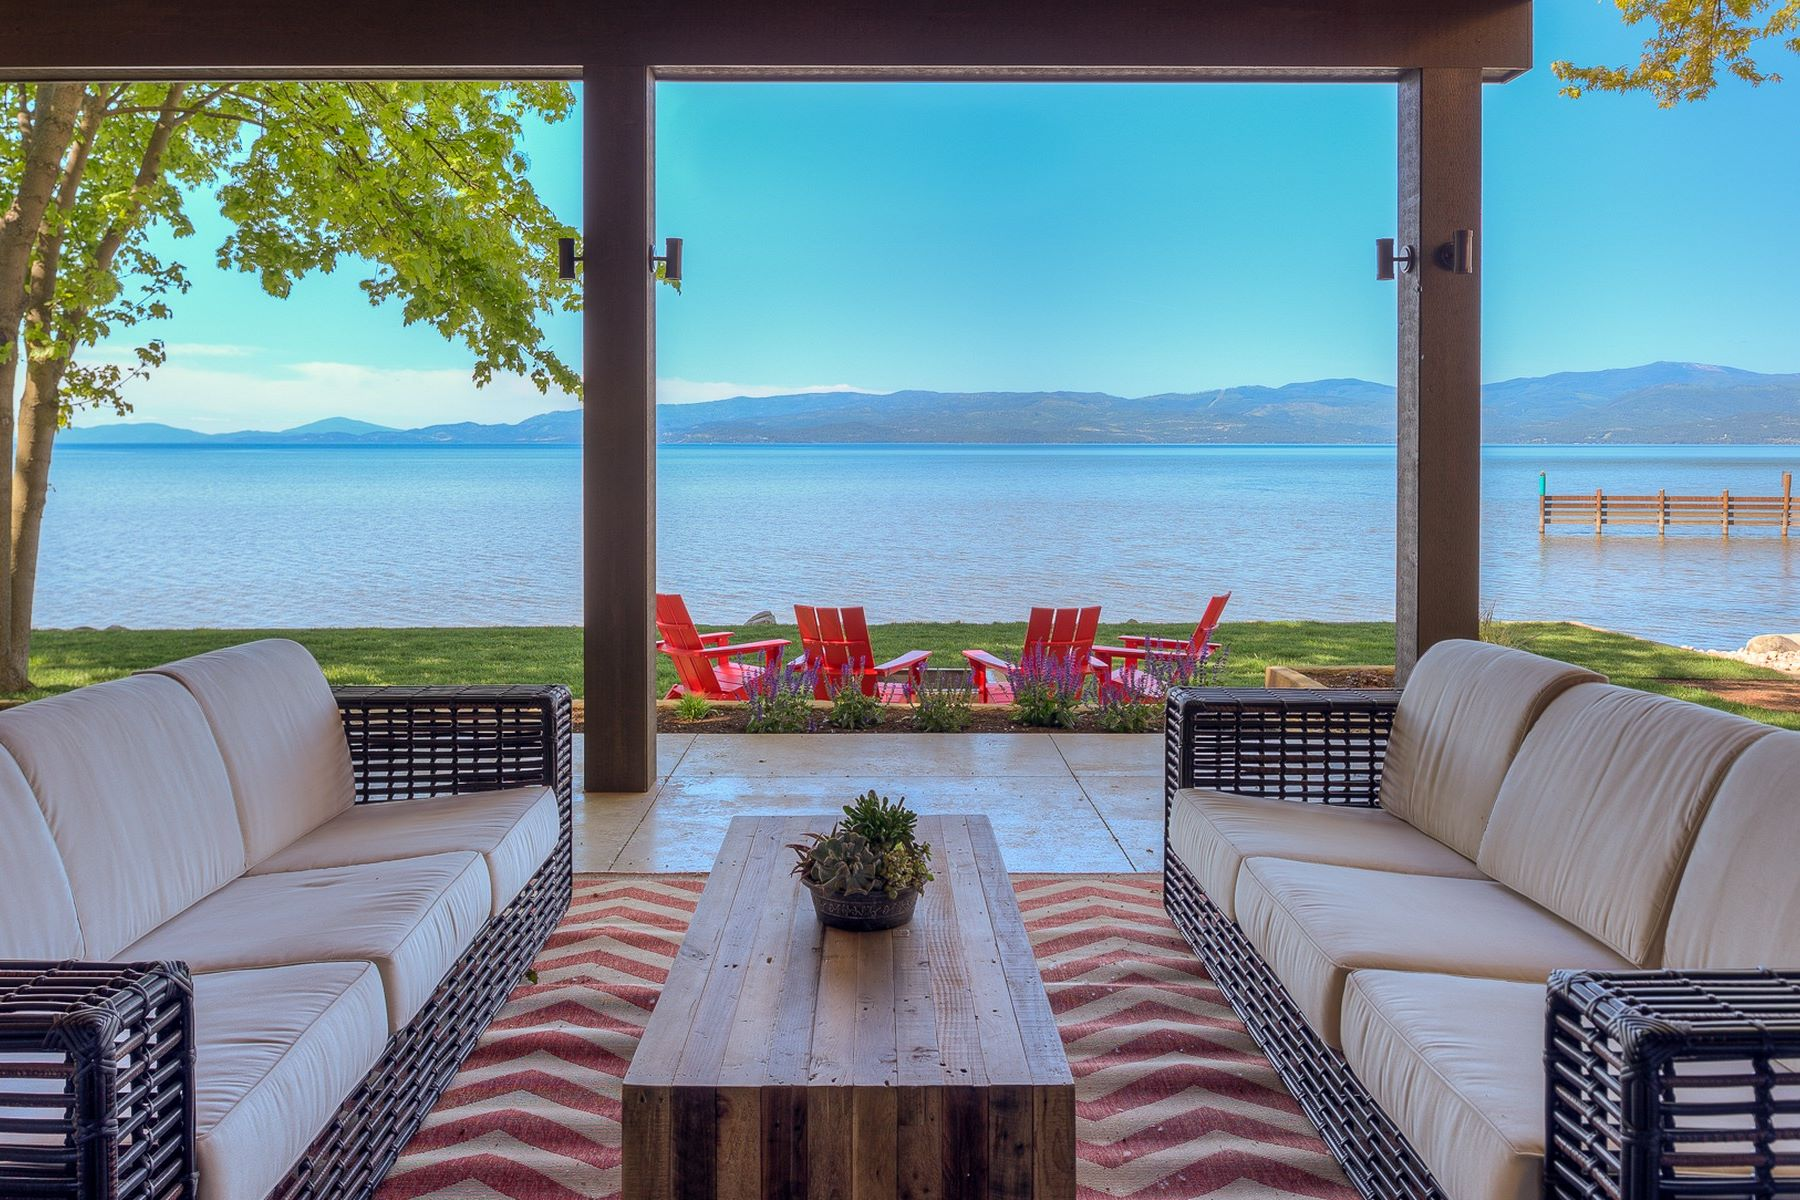 Single Family Home for Sale at Flathead Lake Contemporary 62 Rivers Bigfork, Montana, 59911 United States